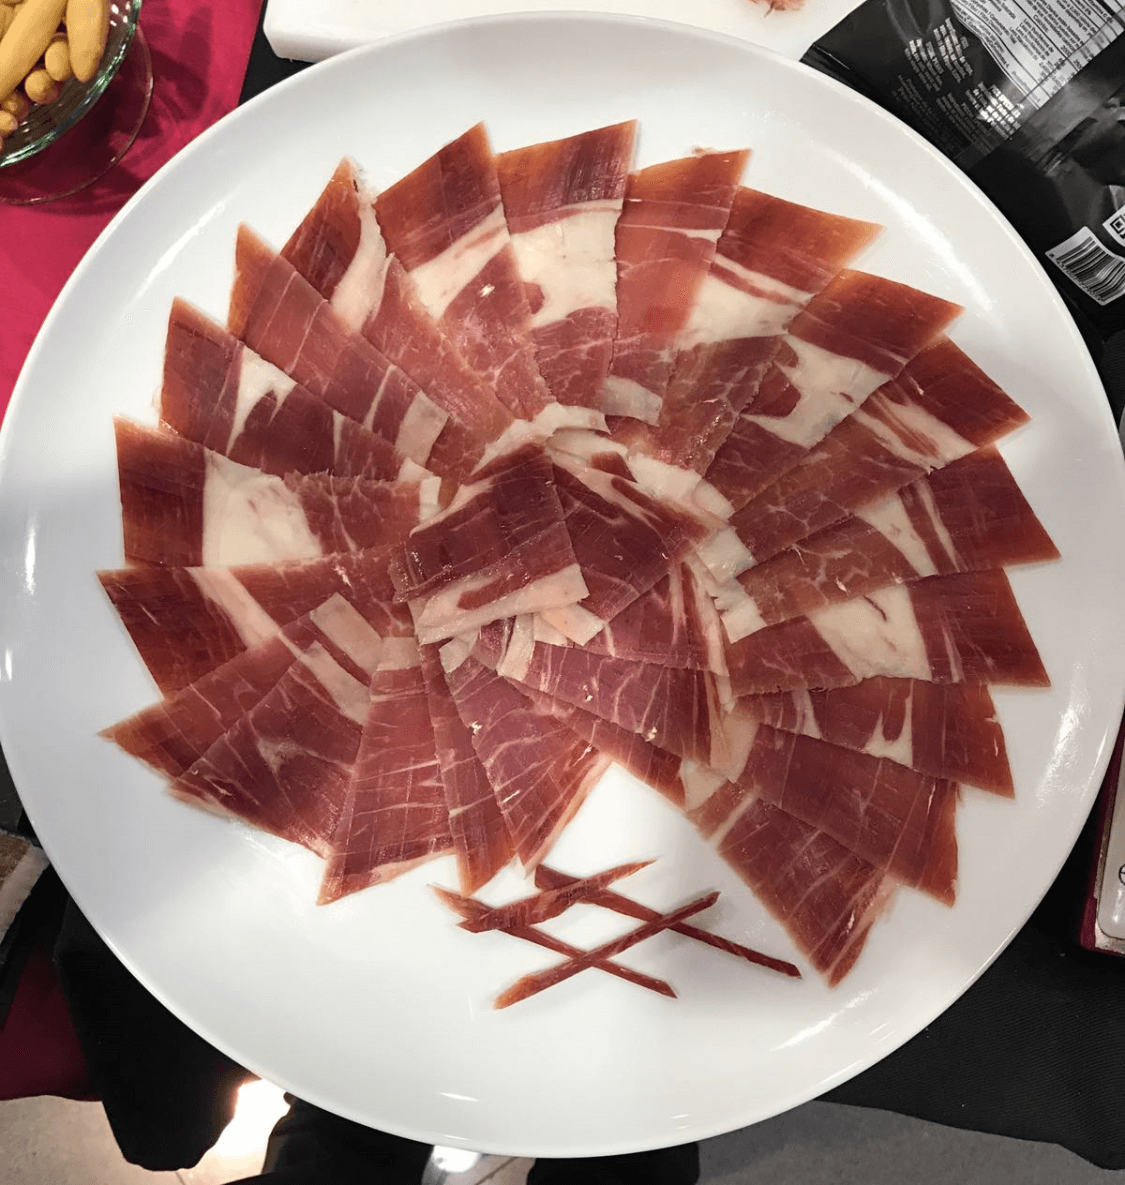 Claves para distinguir un buen jamón ibérico de bellota